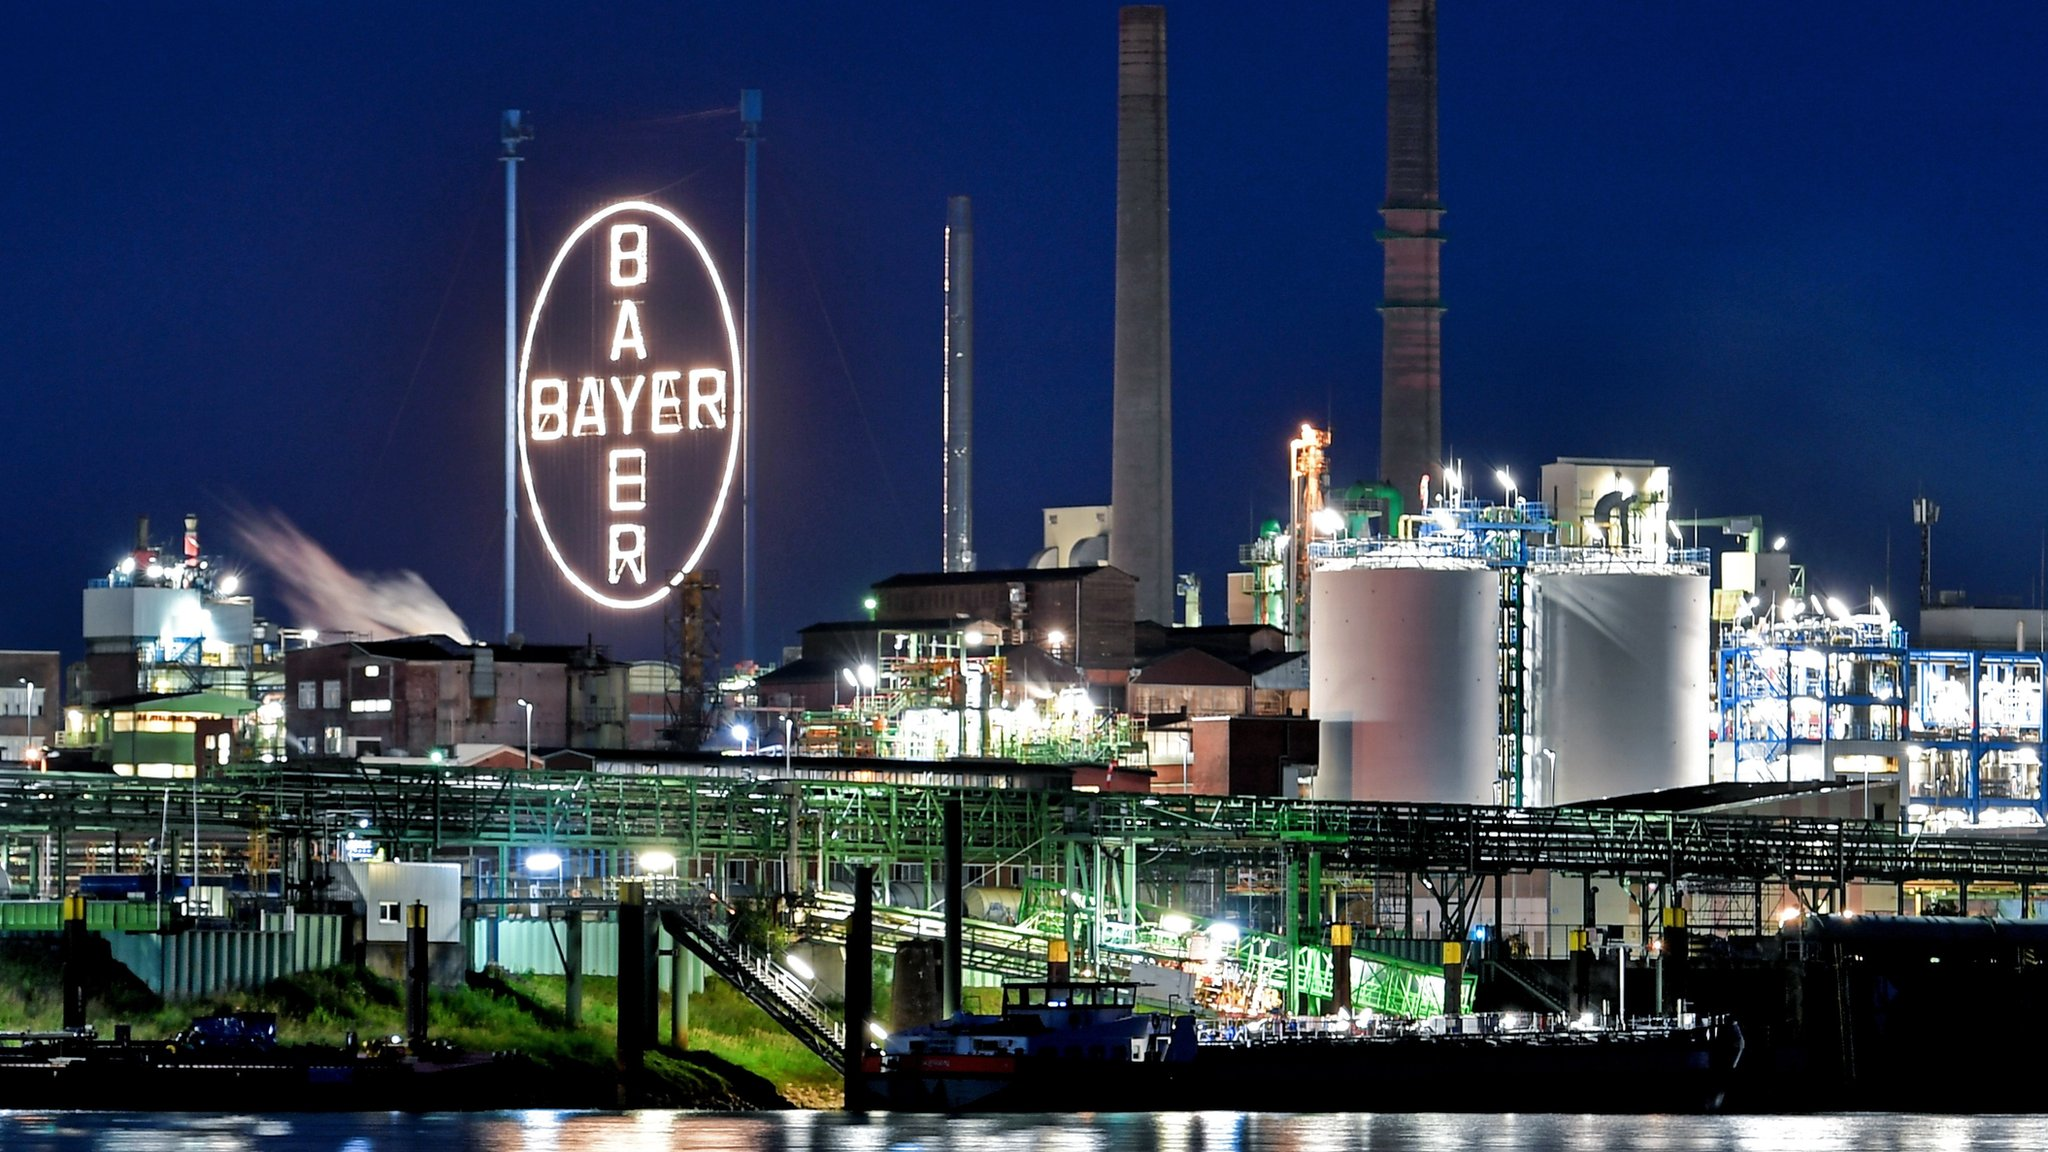 Monsanto weedkiller case: Bayer shares tumble after payout